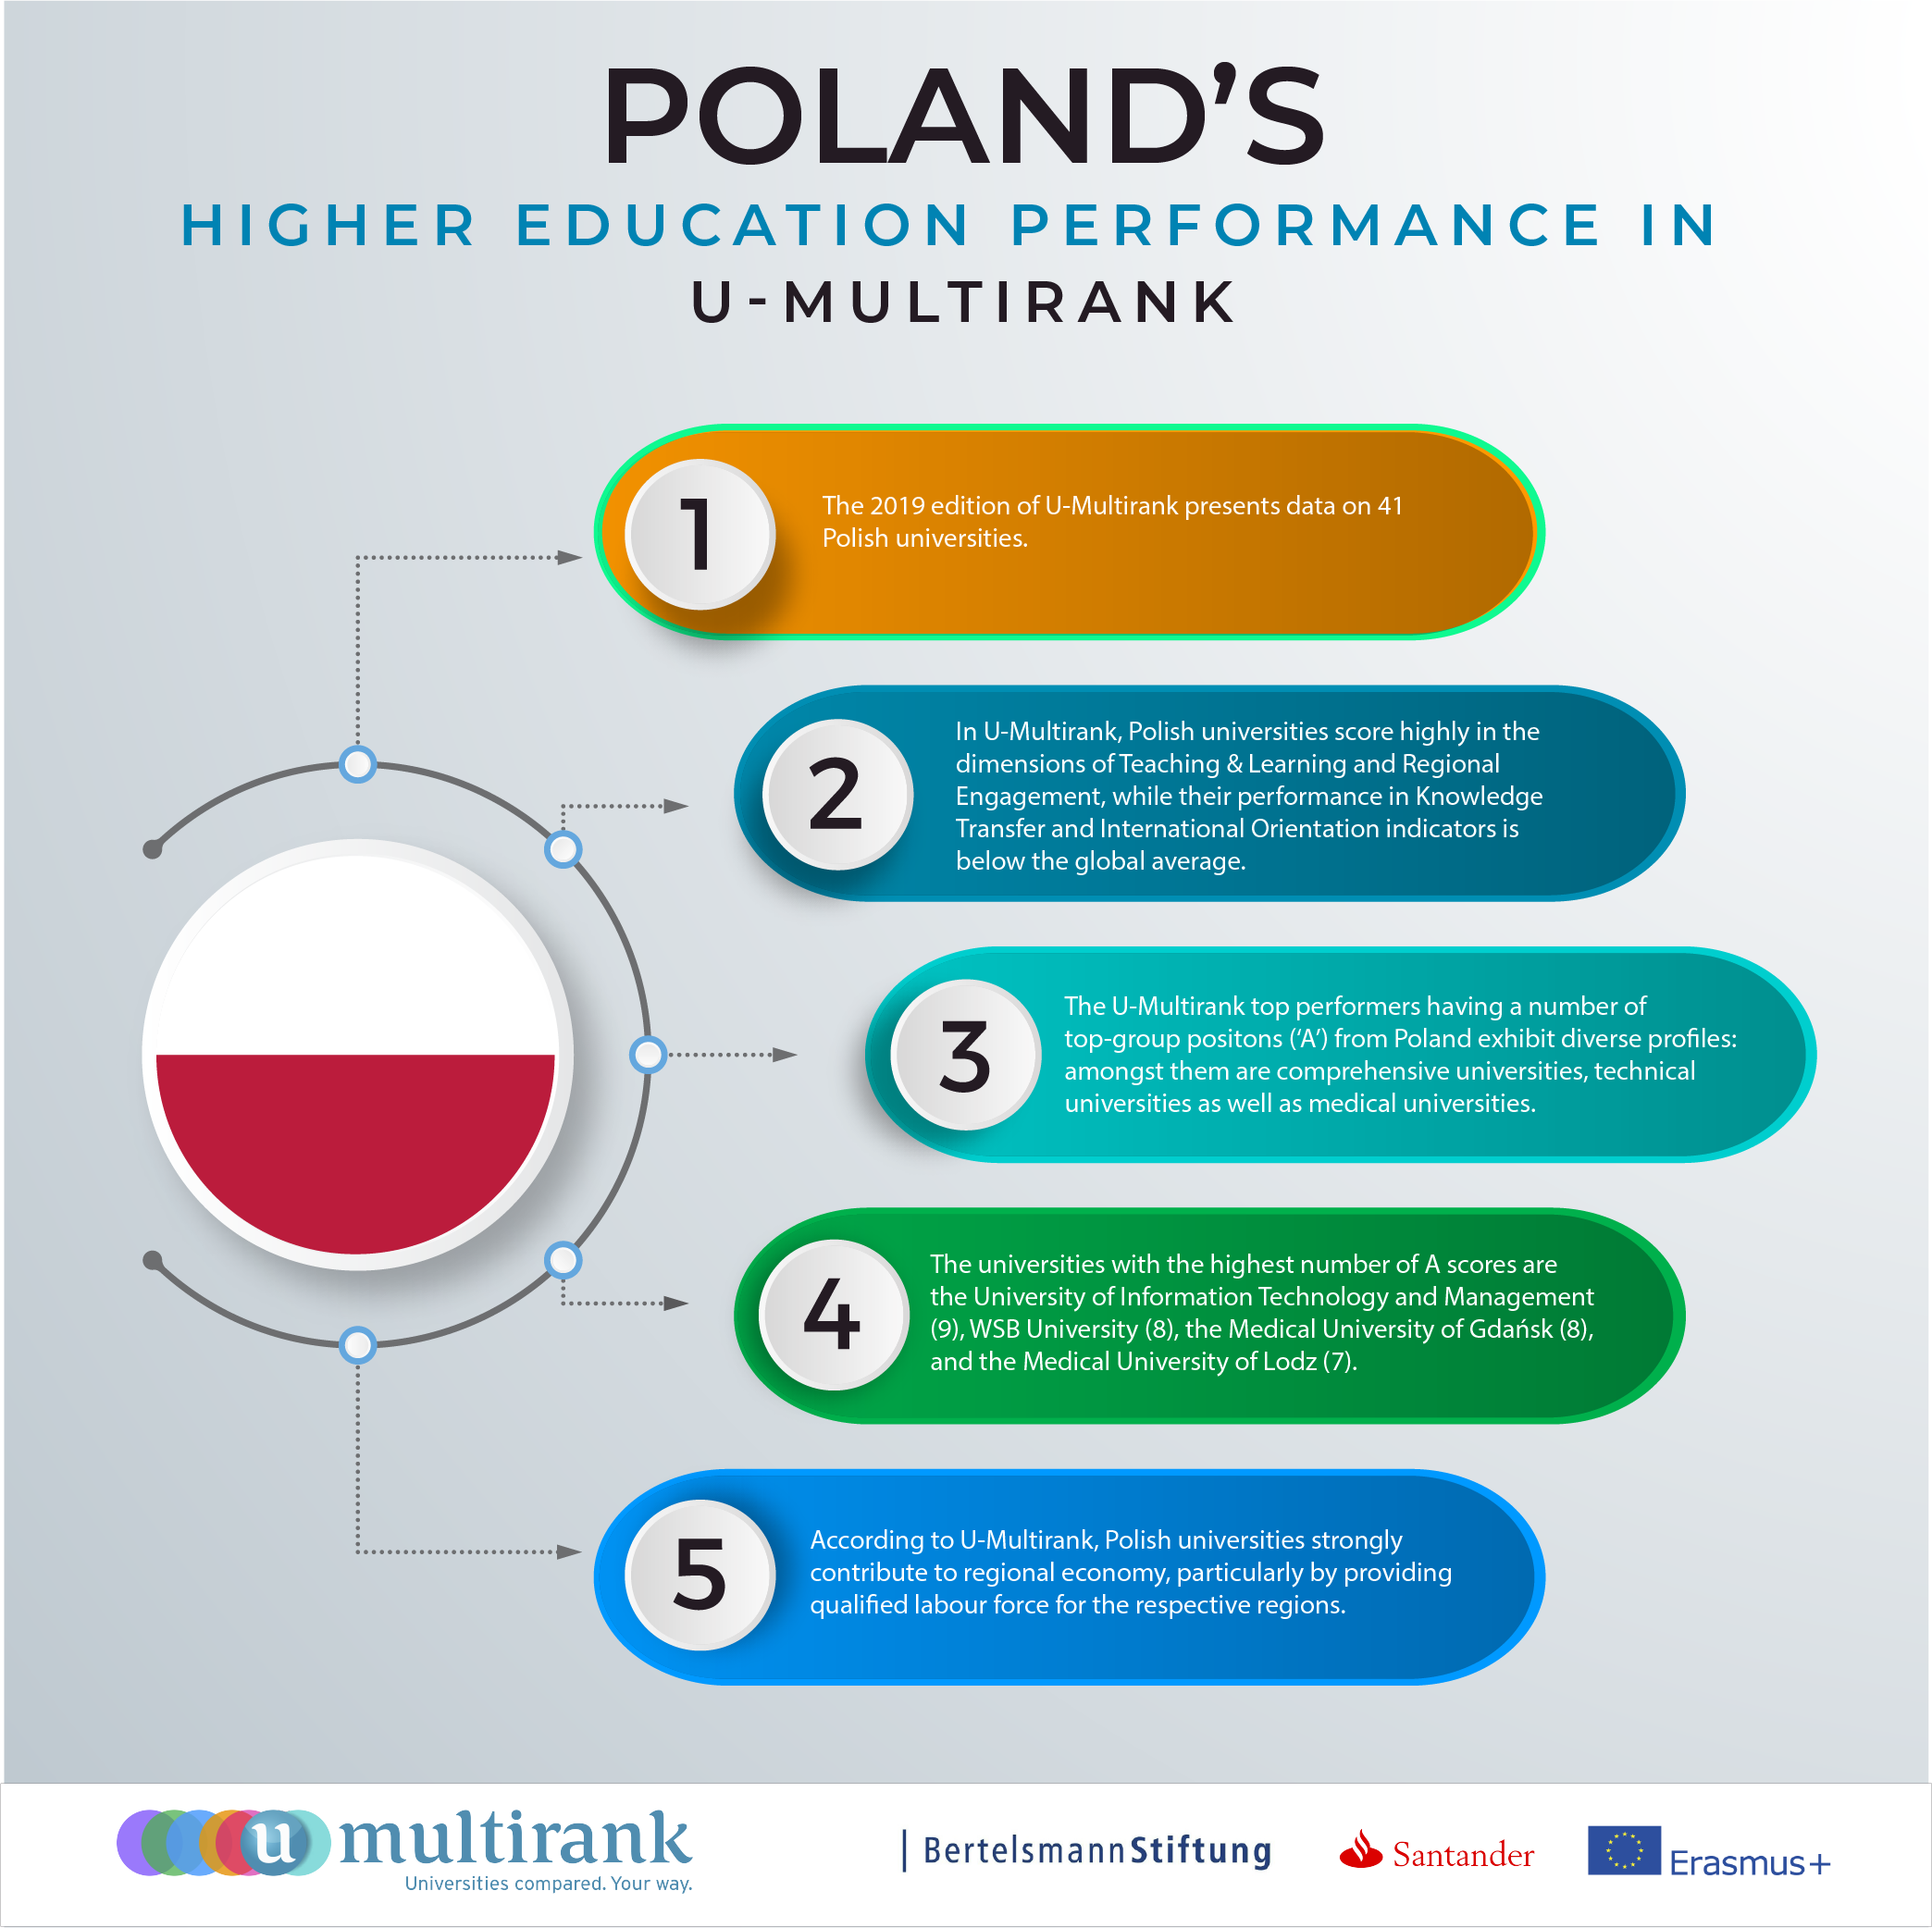 Poland's Higher Education Performance in U-Multirank